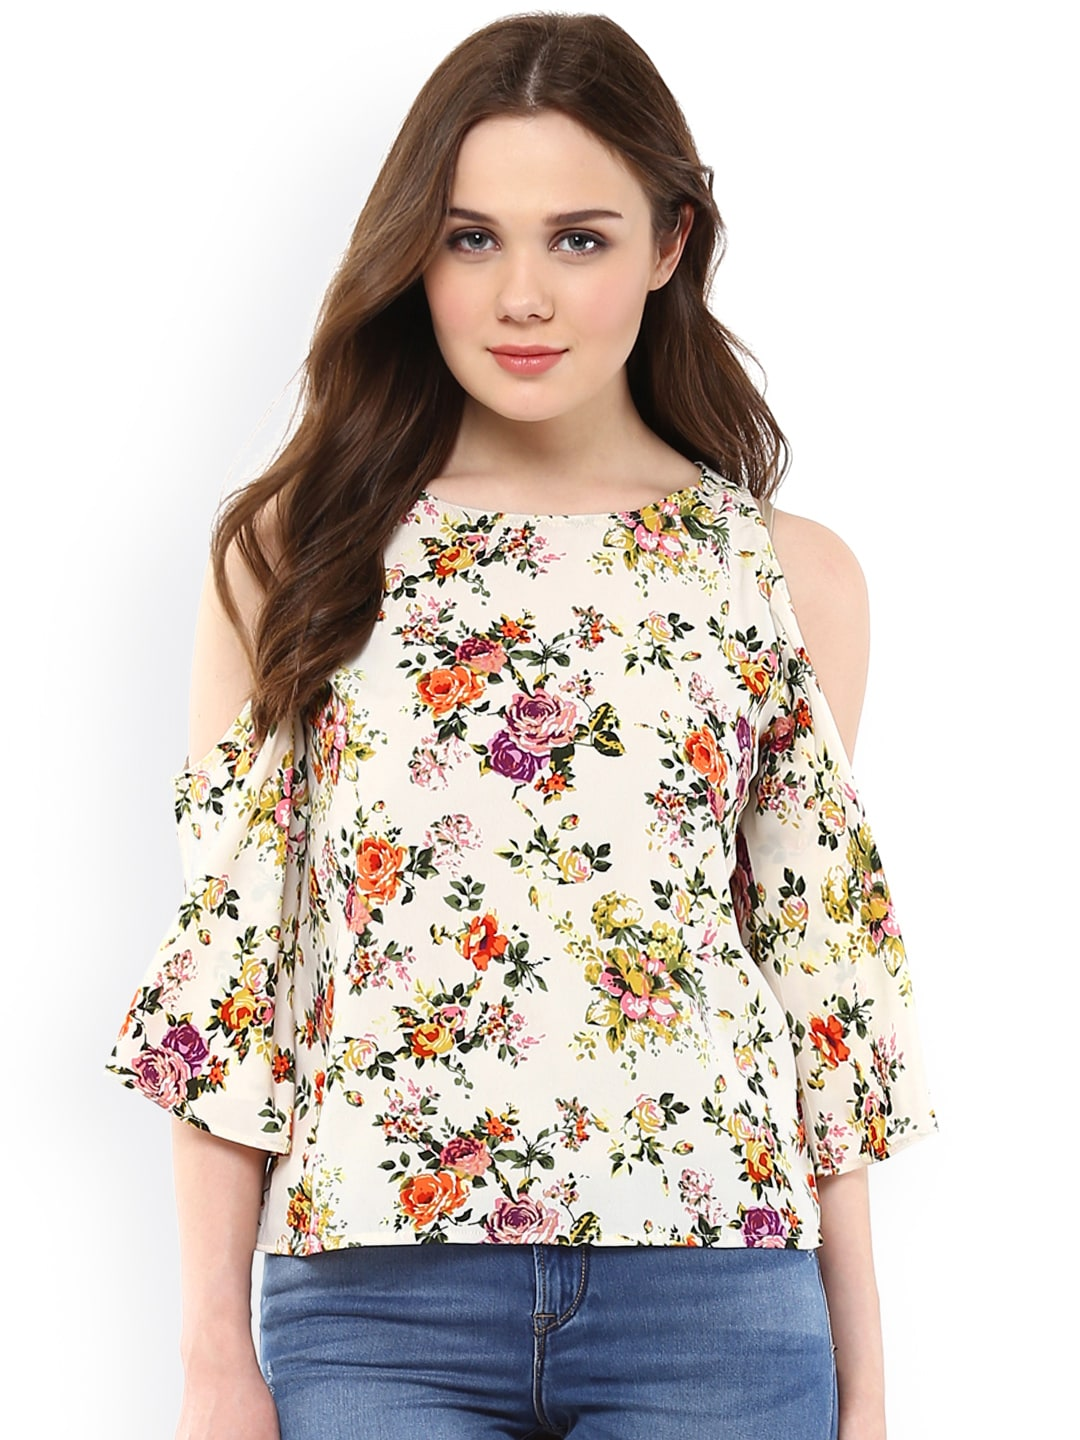 Cold Shoulder Tops - Buy Cold Shoulder Tops for Women Online - Myntra fe458d4a3580